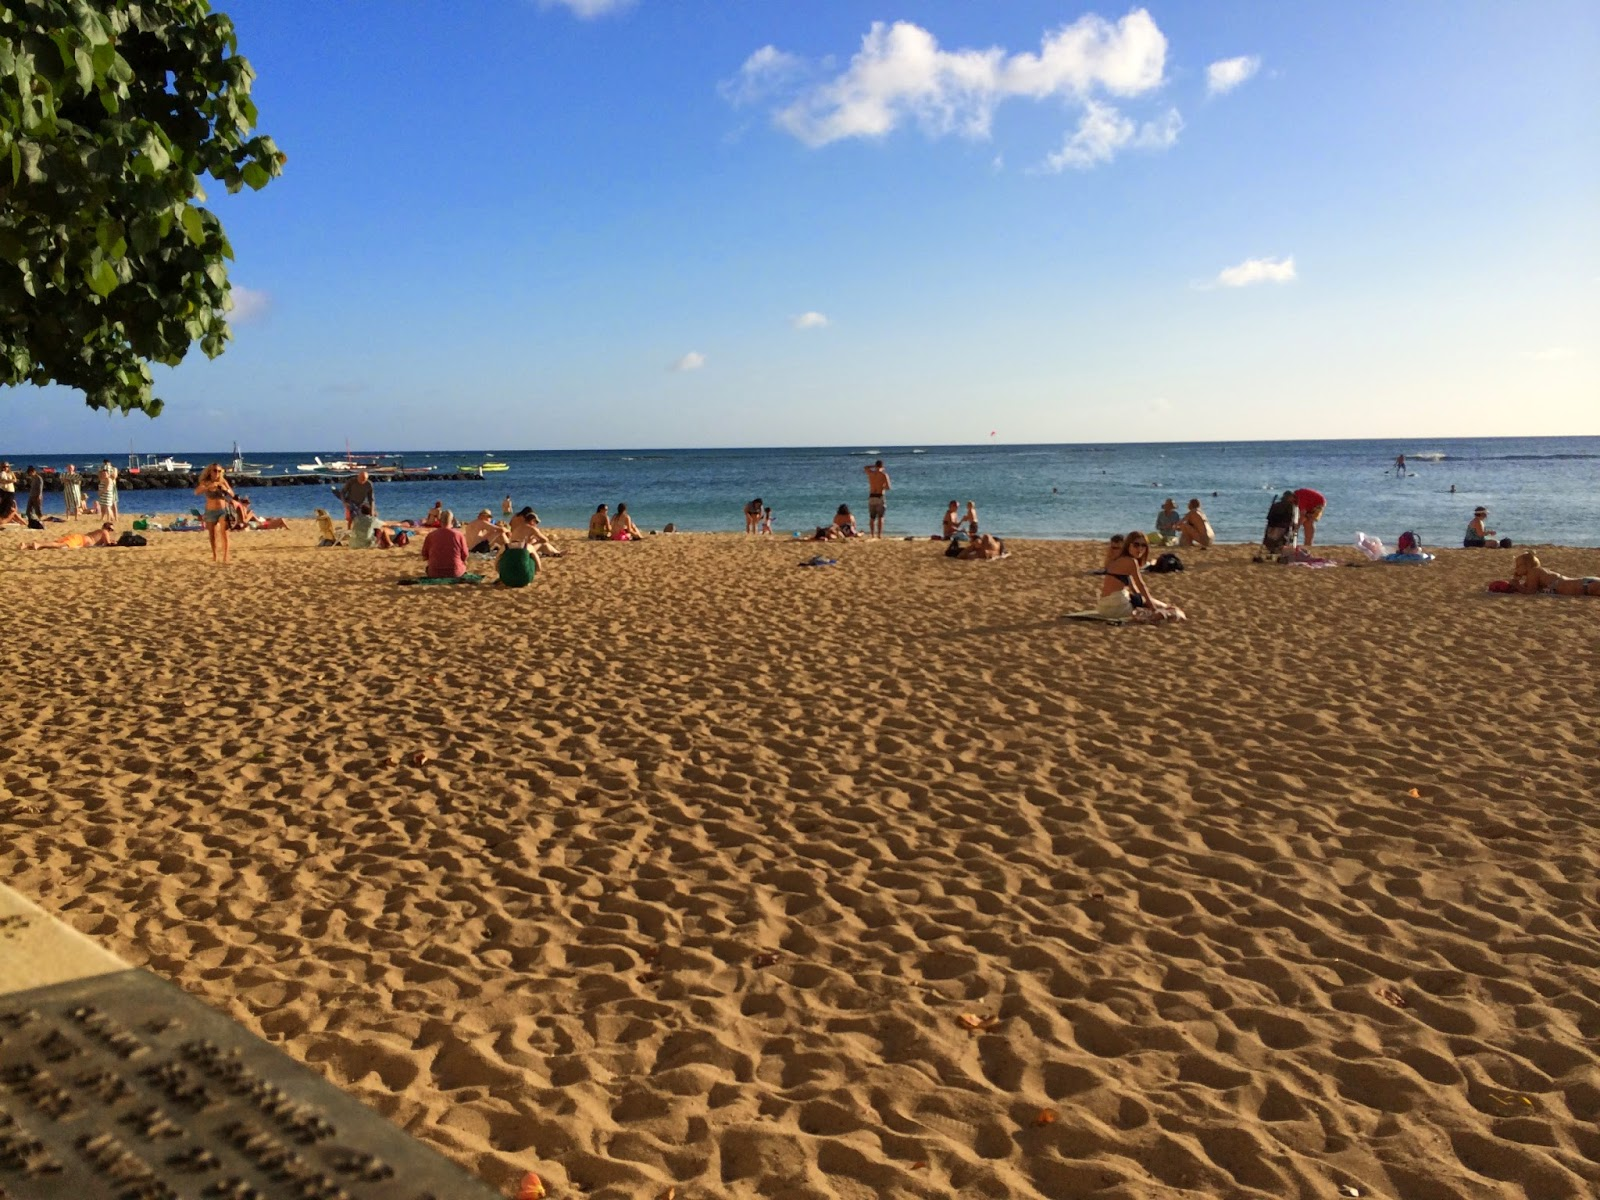 Taste Of Hawaii Hau Tree Lanai Byo Concert Small In Sand The View From Our Table Was Incredible